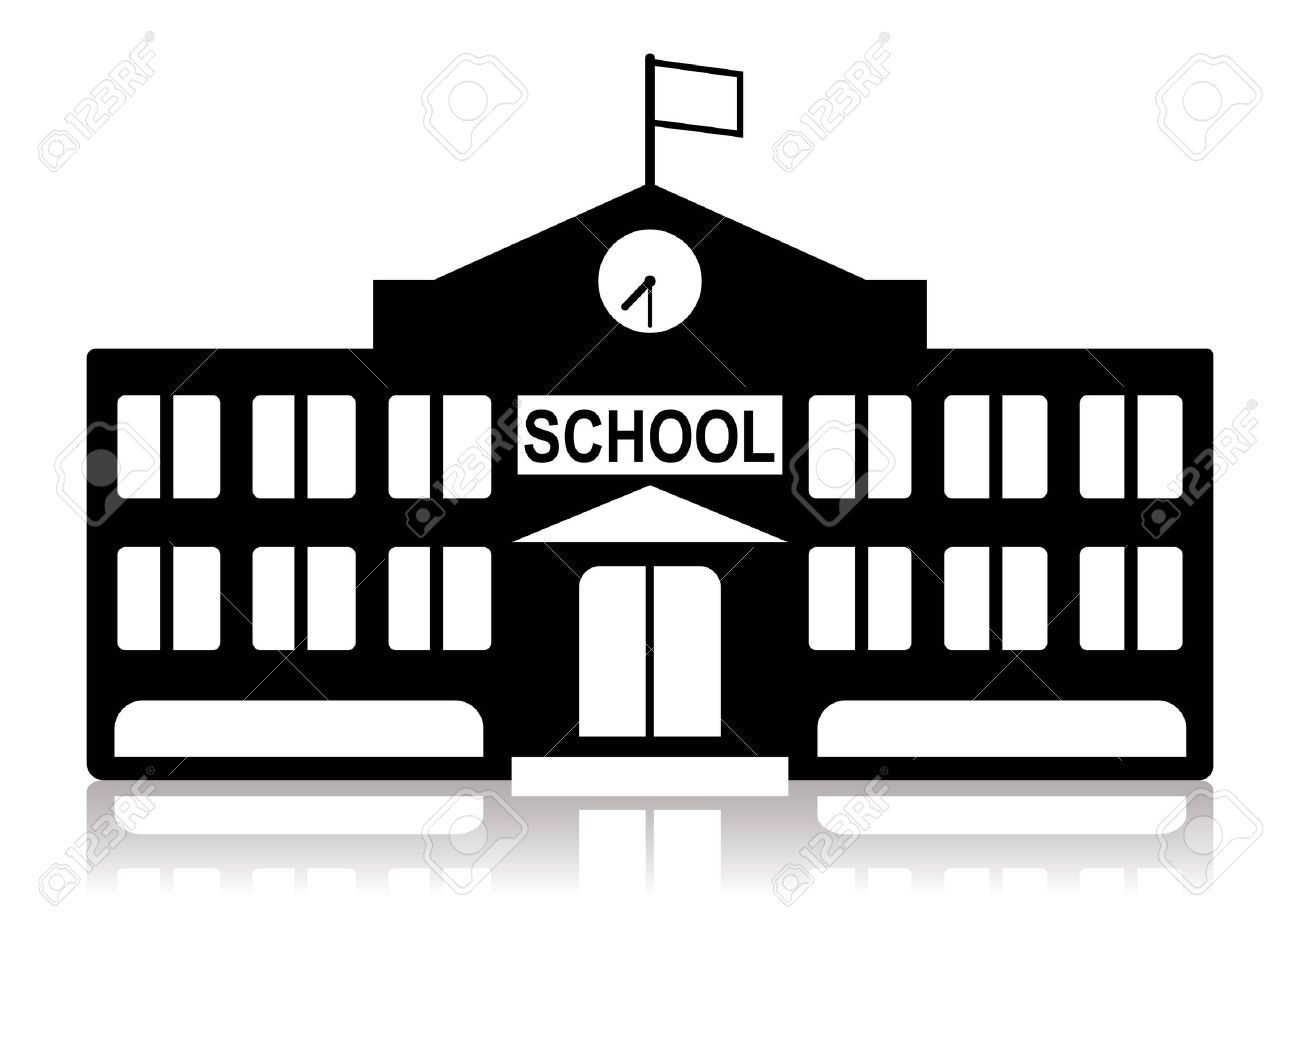 Library building google search. Buildings clipart black and white